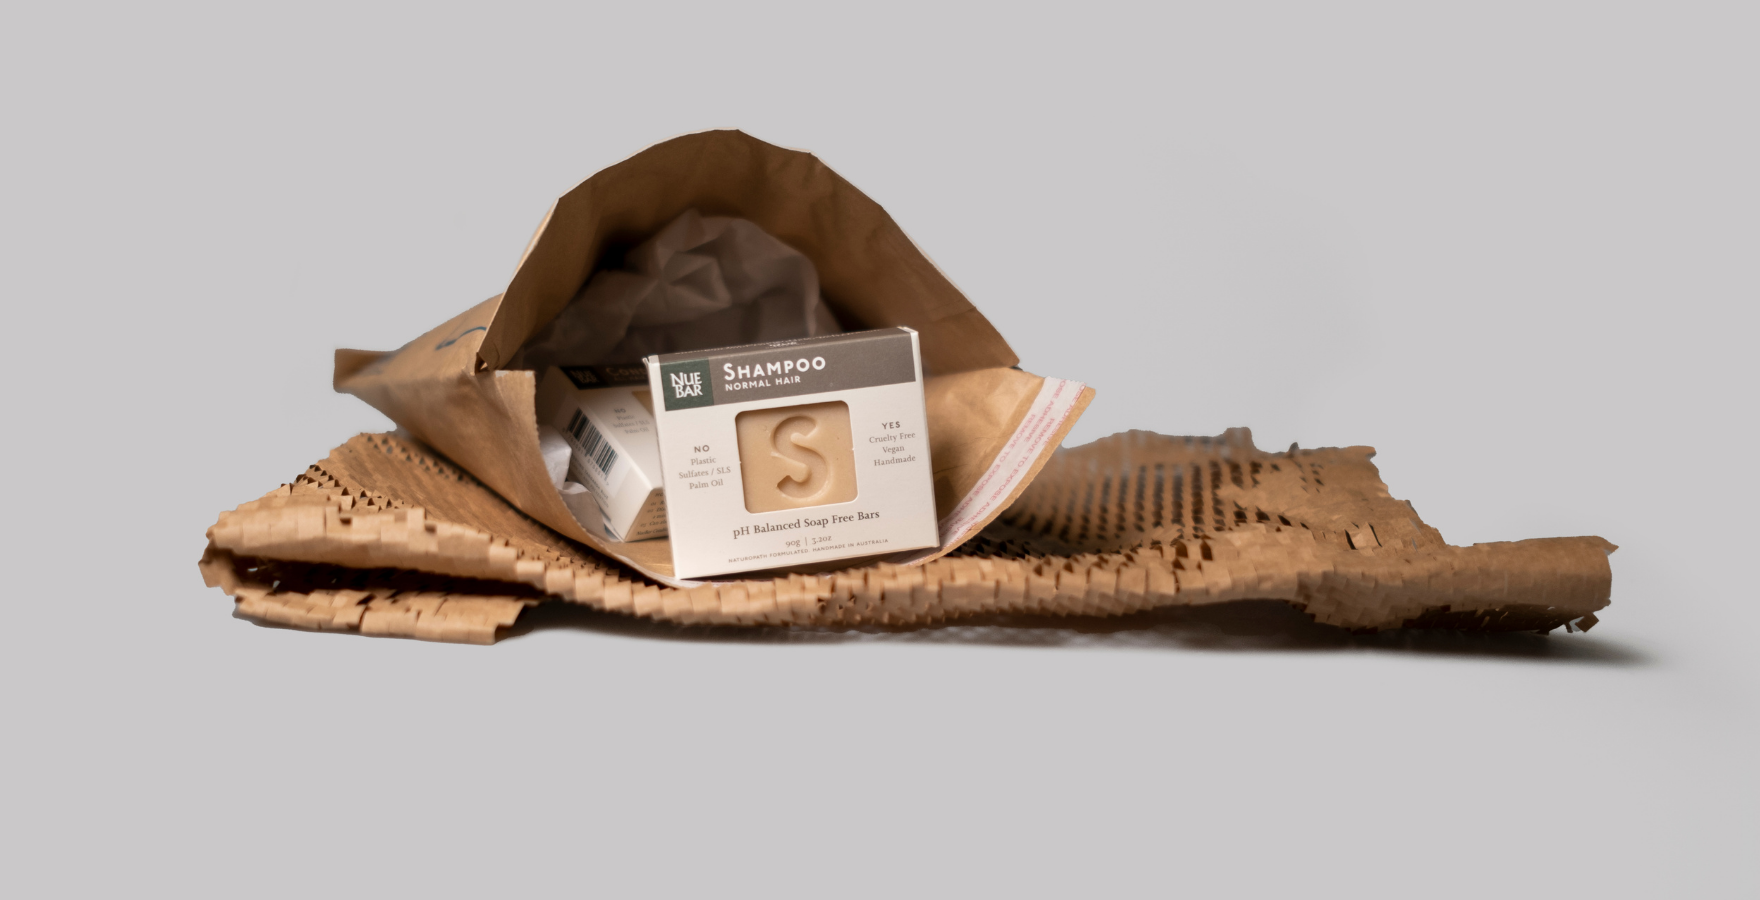 NueBar products packed into a 100% recyclable Jiffy Bag